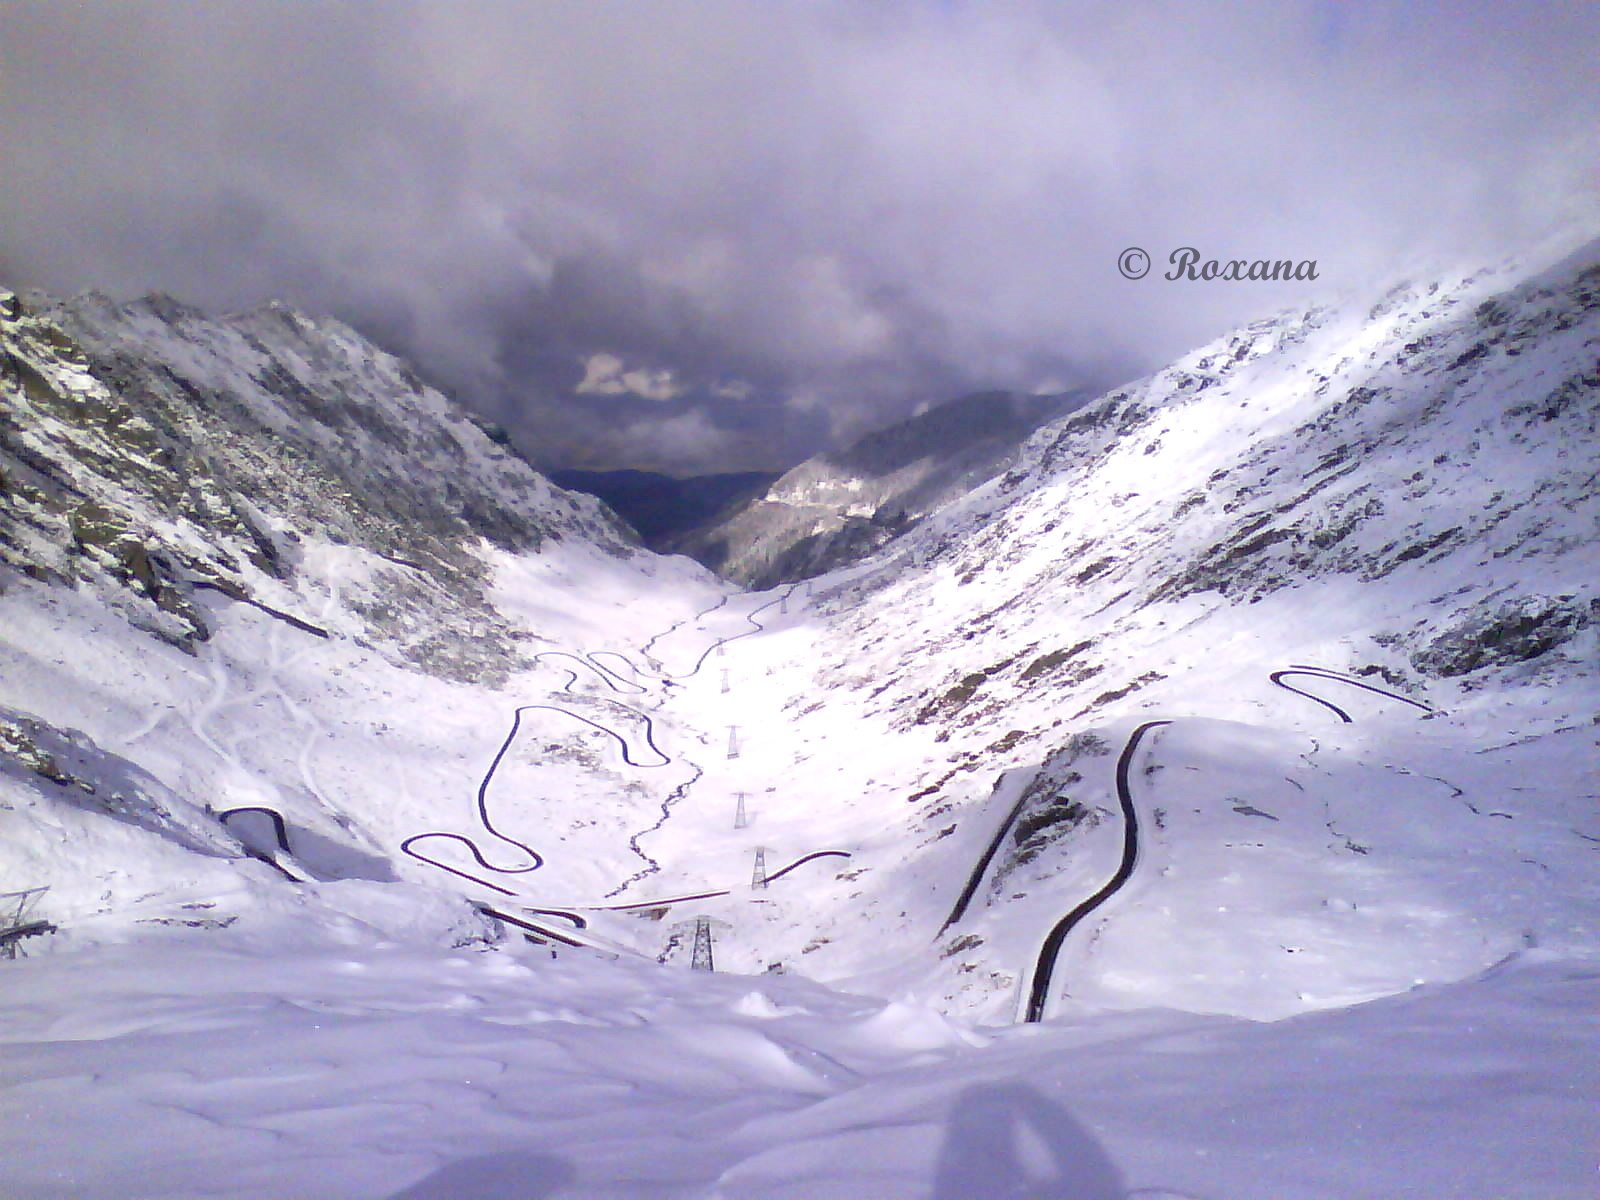 Transfagarasan%20Road%20in%20Winter.jpg